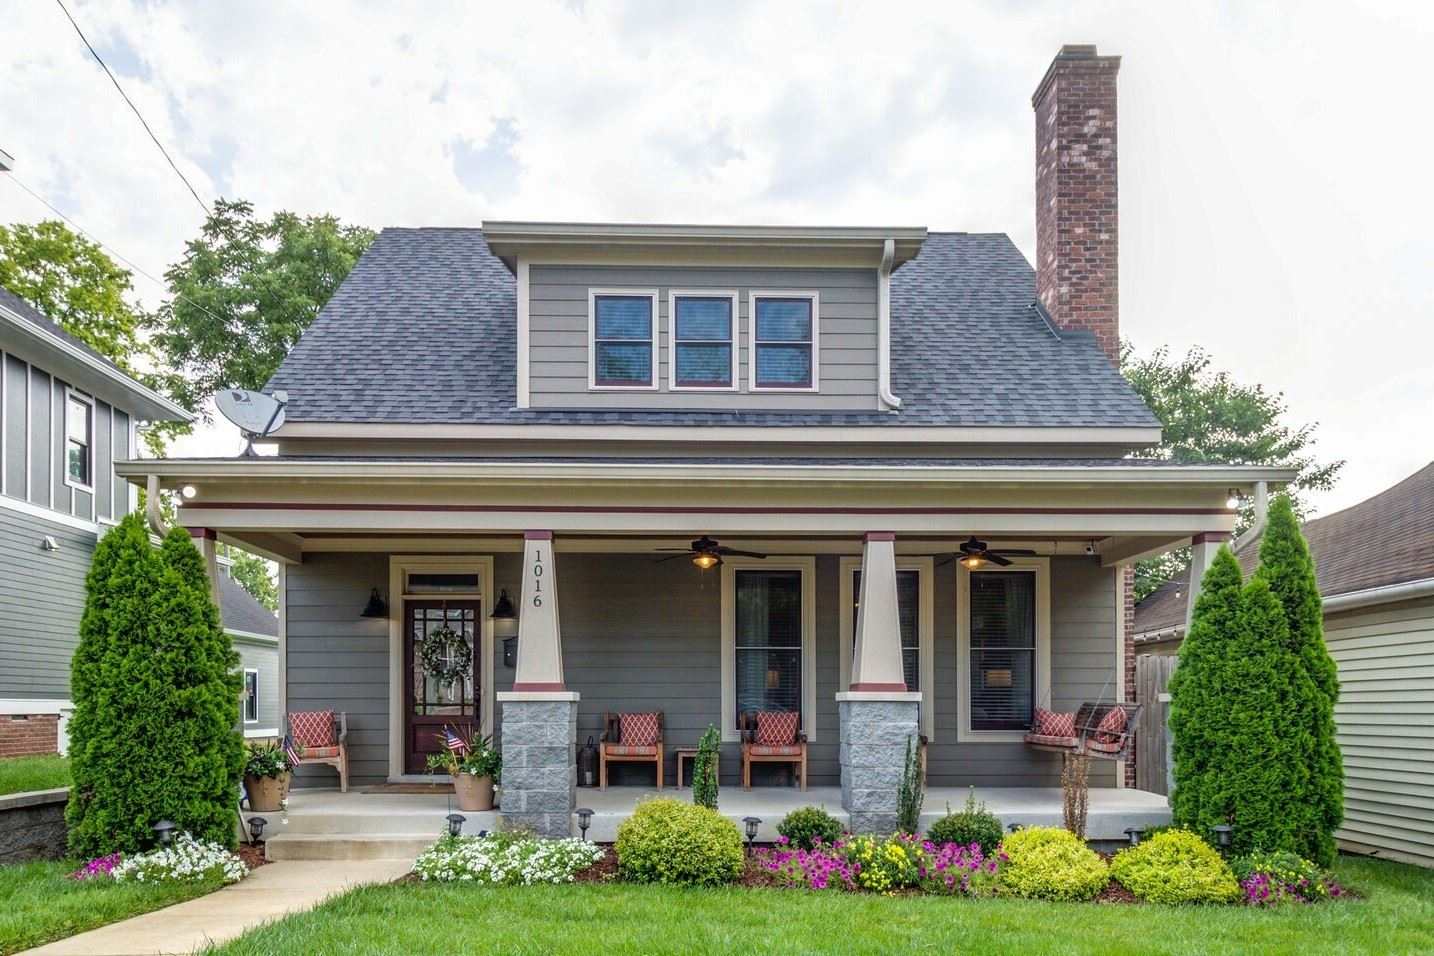 1016 11th Ave N, Nashville, TN 37208 - MLS#: 2187933